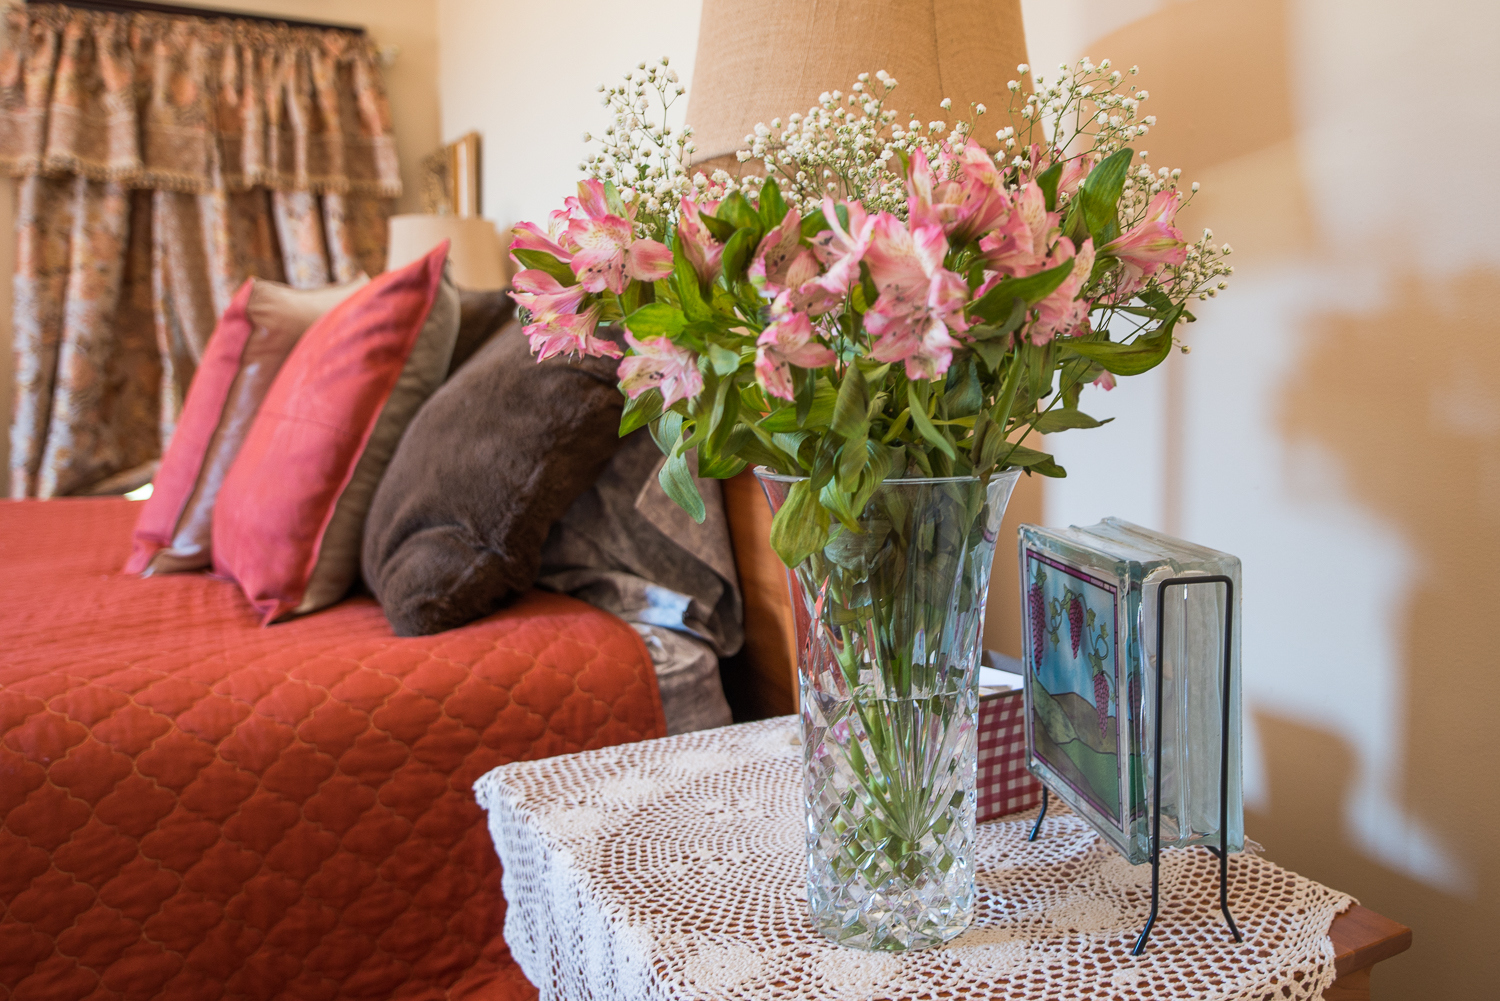 flowers on table with bed in background